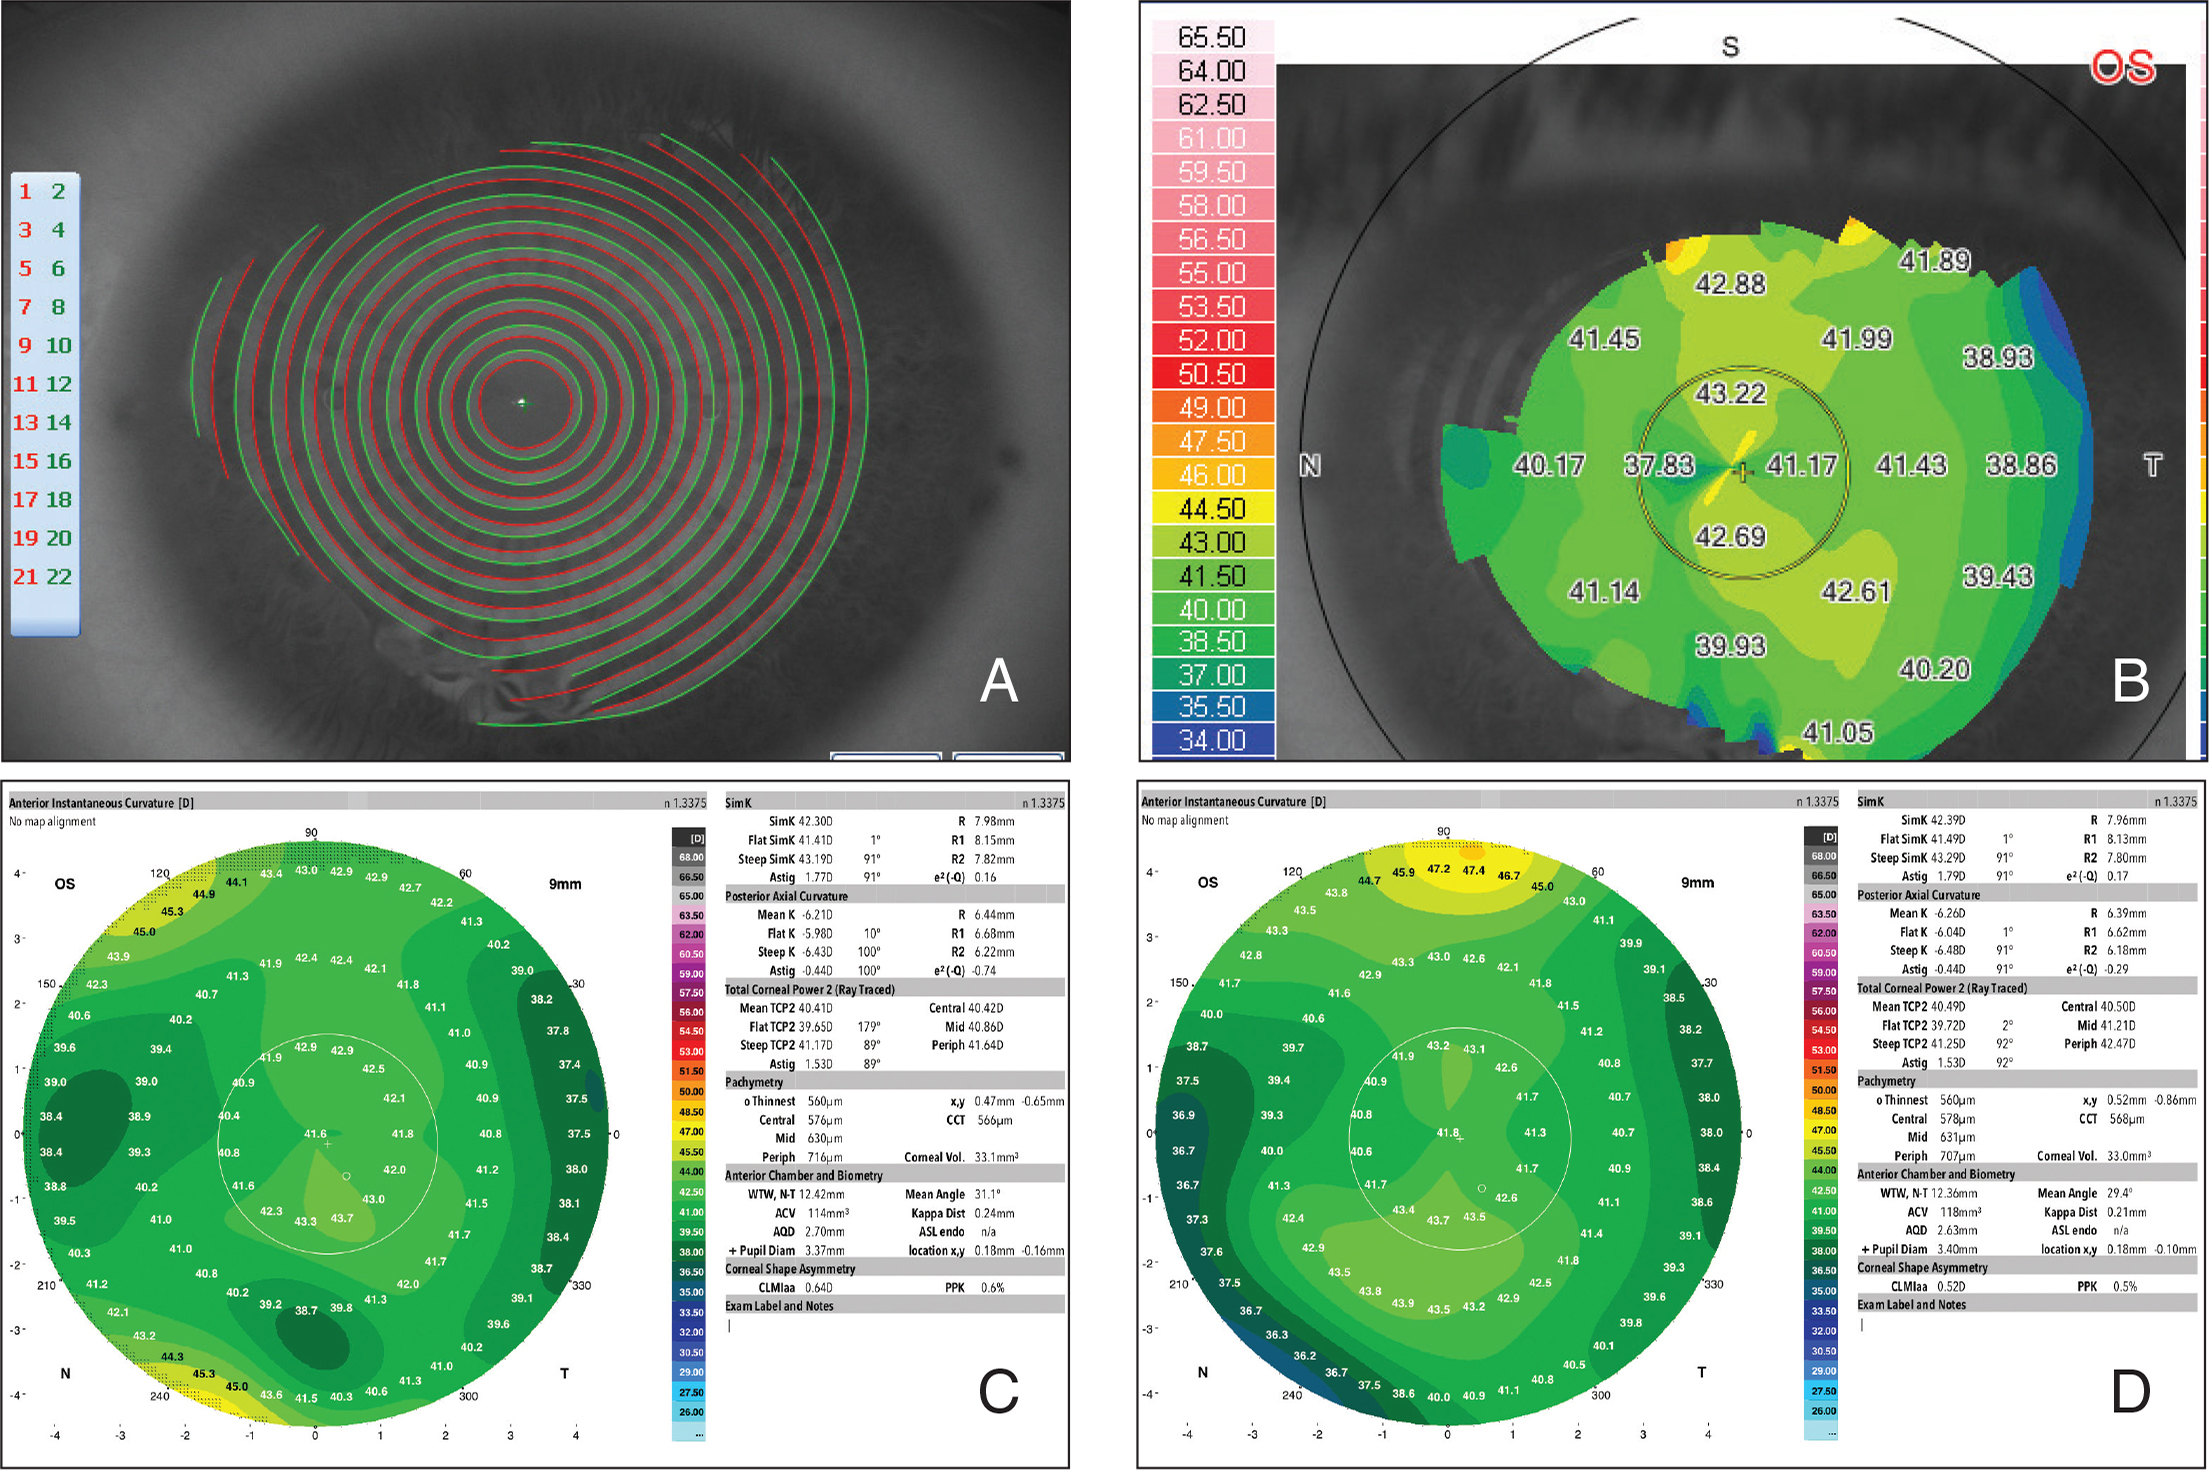 (A) Placido rings of the Peramis dual-Placido and pyramidal aberrometer platform (CSO) projected on the cornea preoperatively, showing lack of data acquisition over the inferonasal peripheral nodular lesion. (B) The color-coded instantaneous curvature map of the Peramis platform showing a measurement deficit over the lesion. (C) Preoperative instantaneous curvature map of the cornea using the GALILEI dual-Placido and Scheimpflug system (Ziemer). Moderate peripheral irregularities could be seen inferonasally at the site of the corneal lesion. (D) Instantaneous curvature map at 6 months postoperatively showing no change centrally, but smoothing of the irregularities inferonasally.